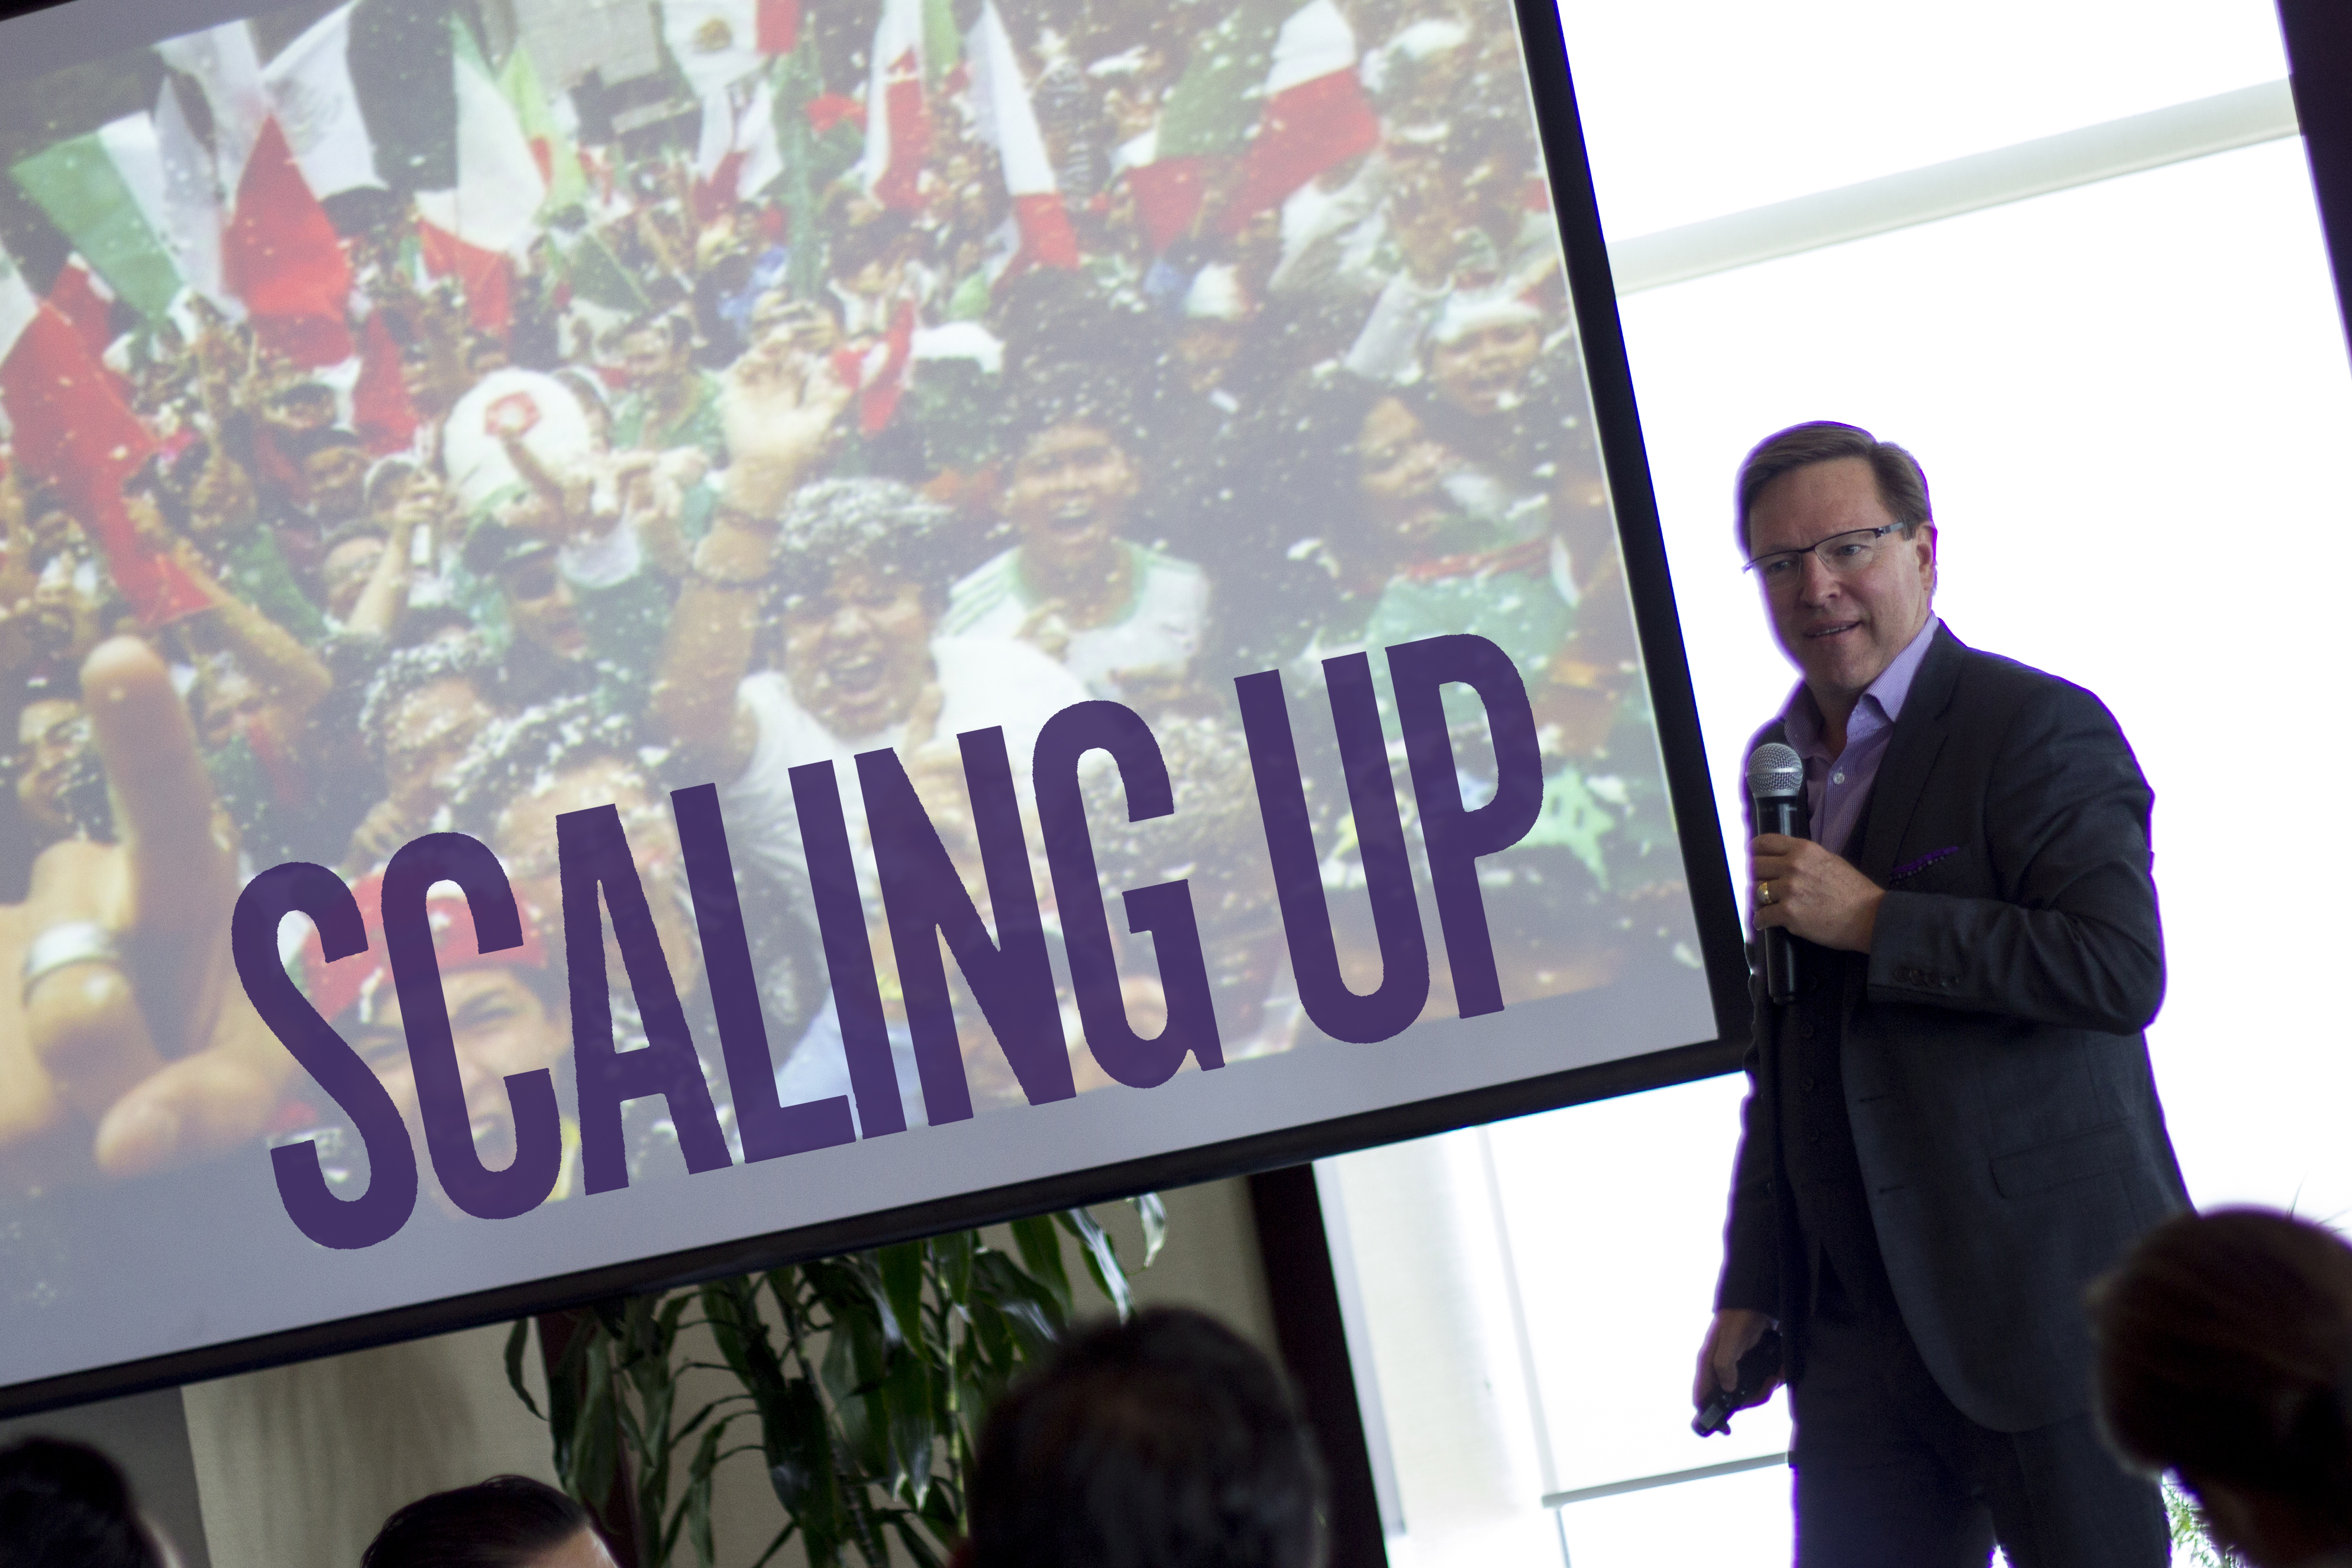 Scaling Up Summit - Mexico City